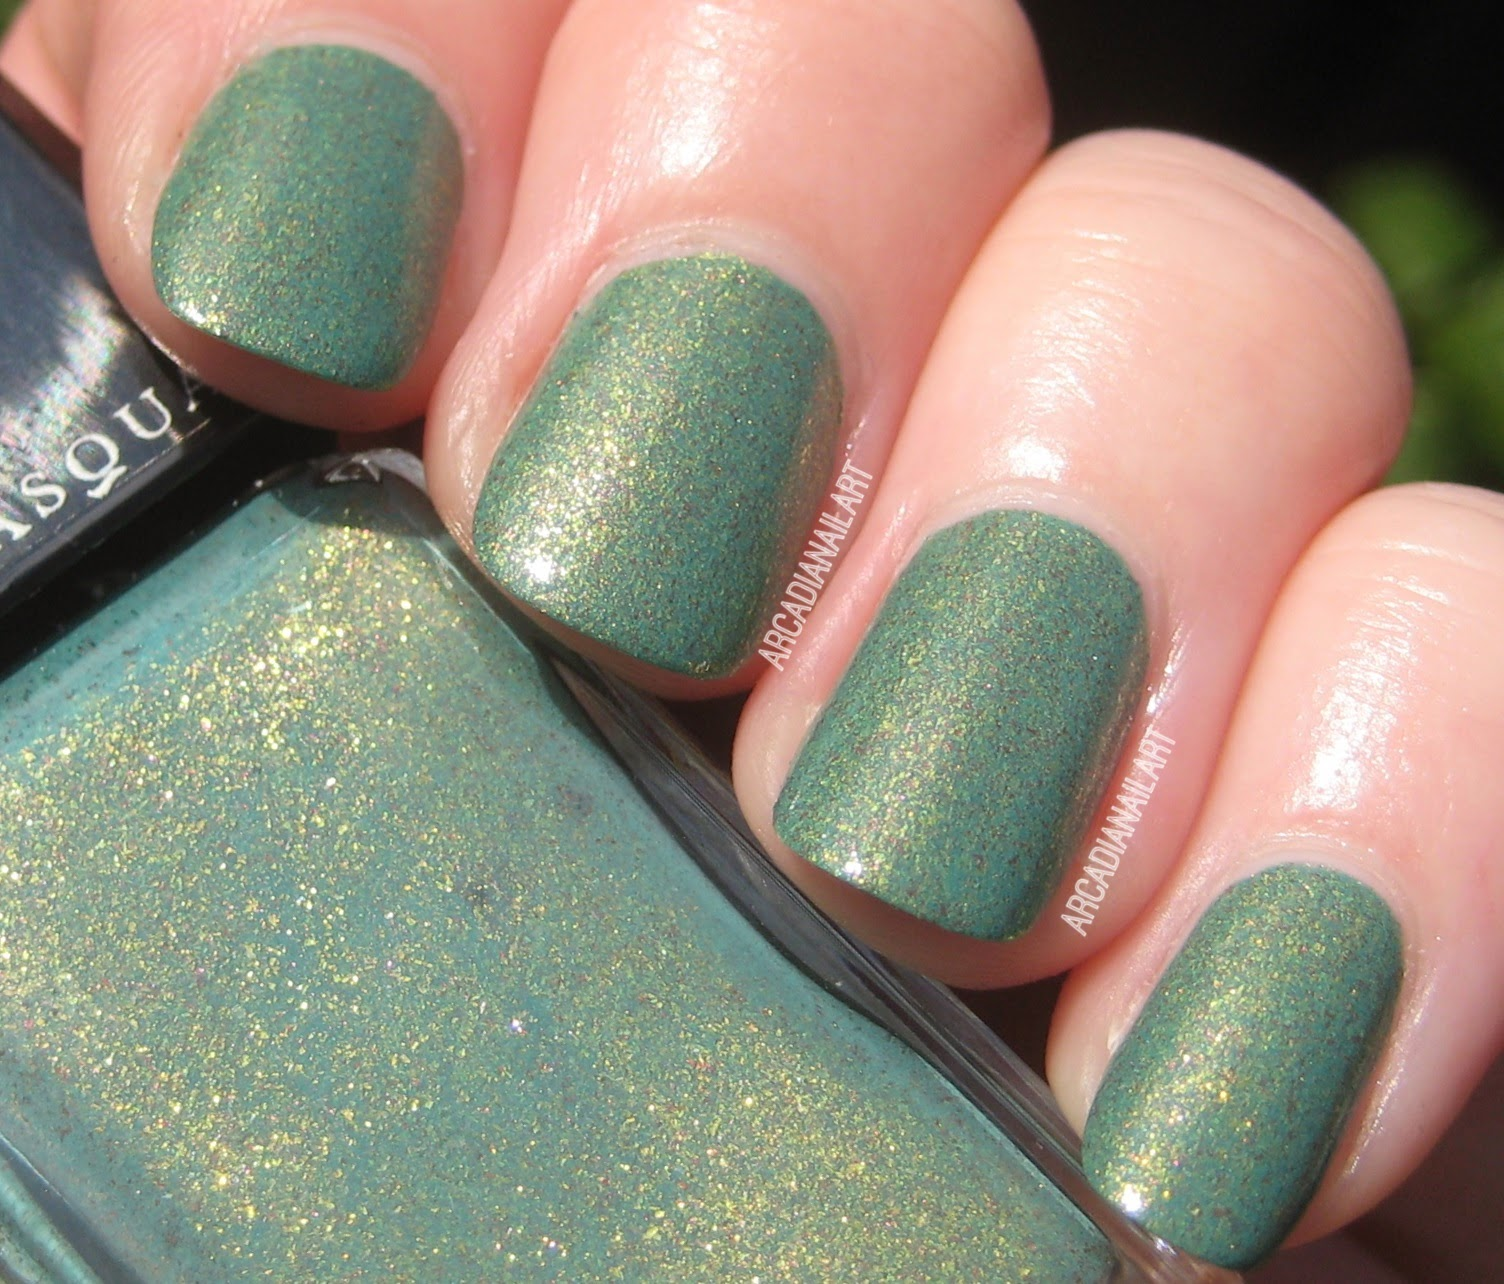 Jade Green Foiled Nail Polish by Illamasqua, Melange